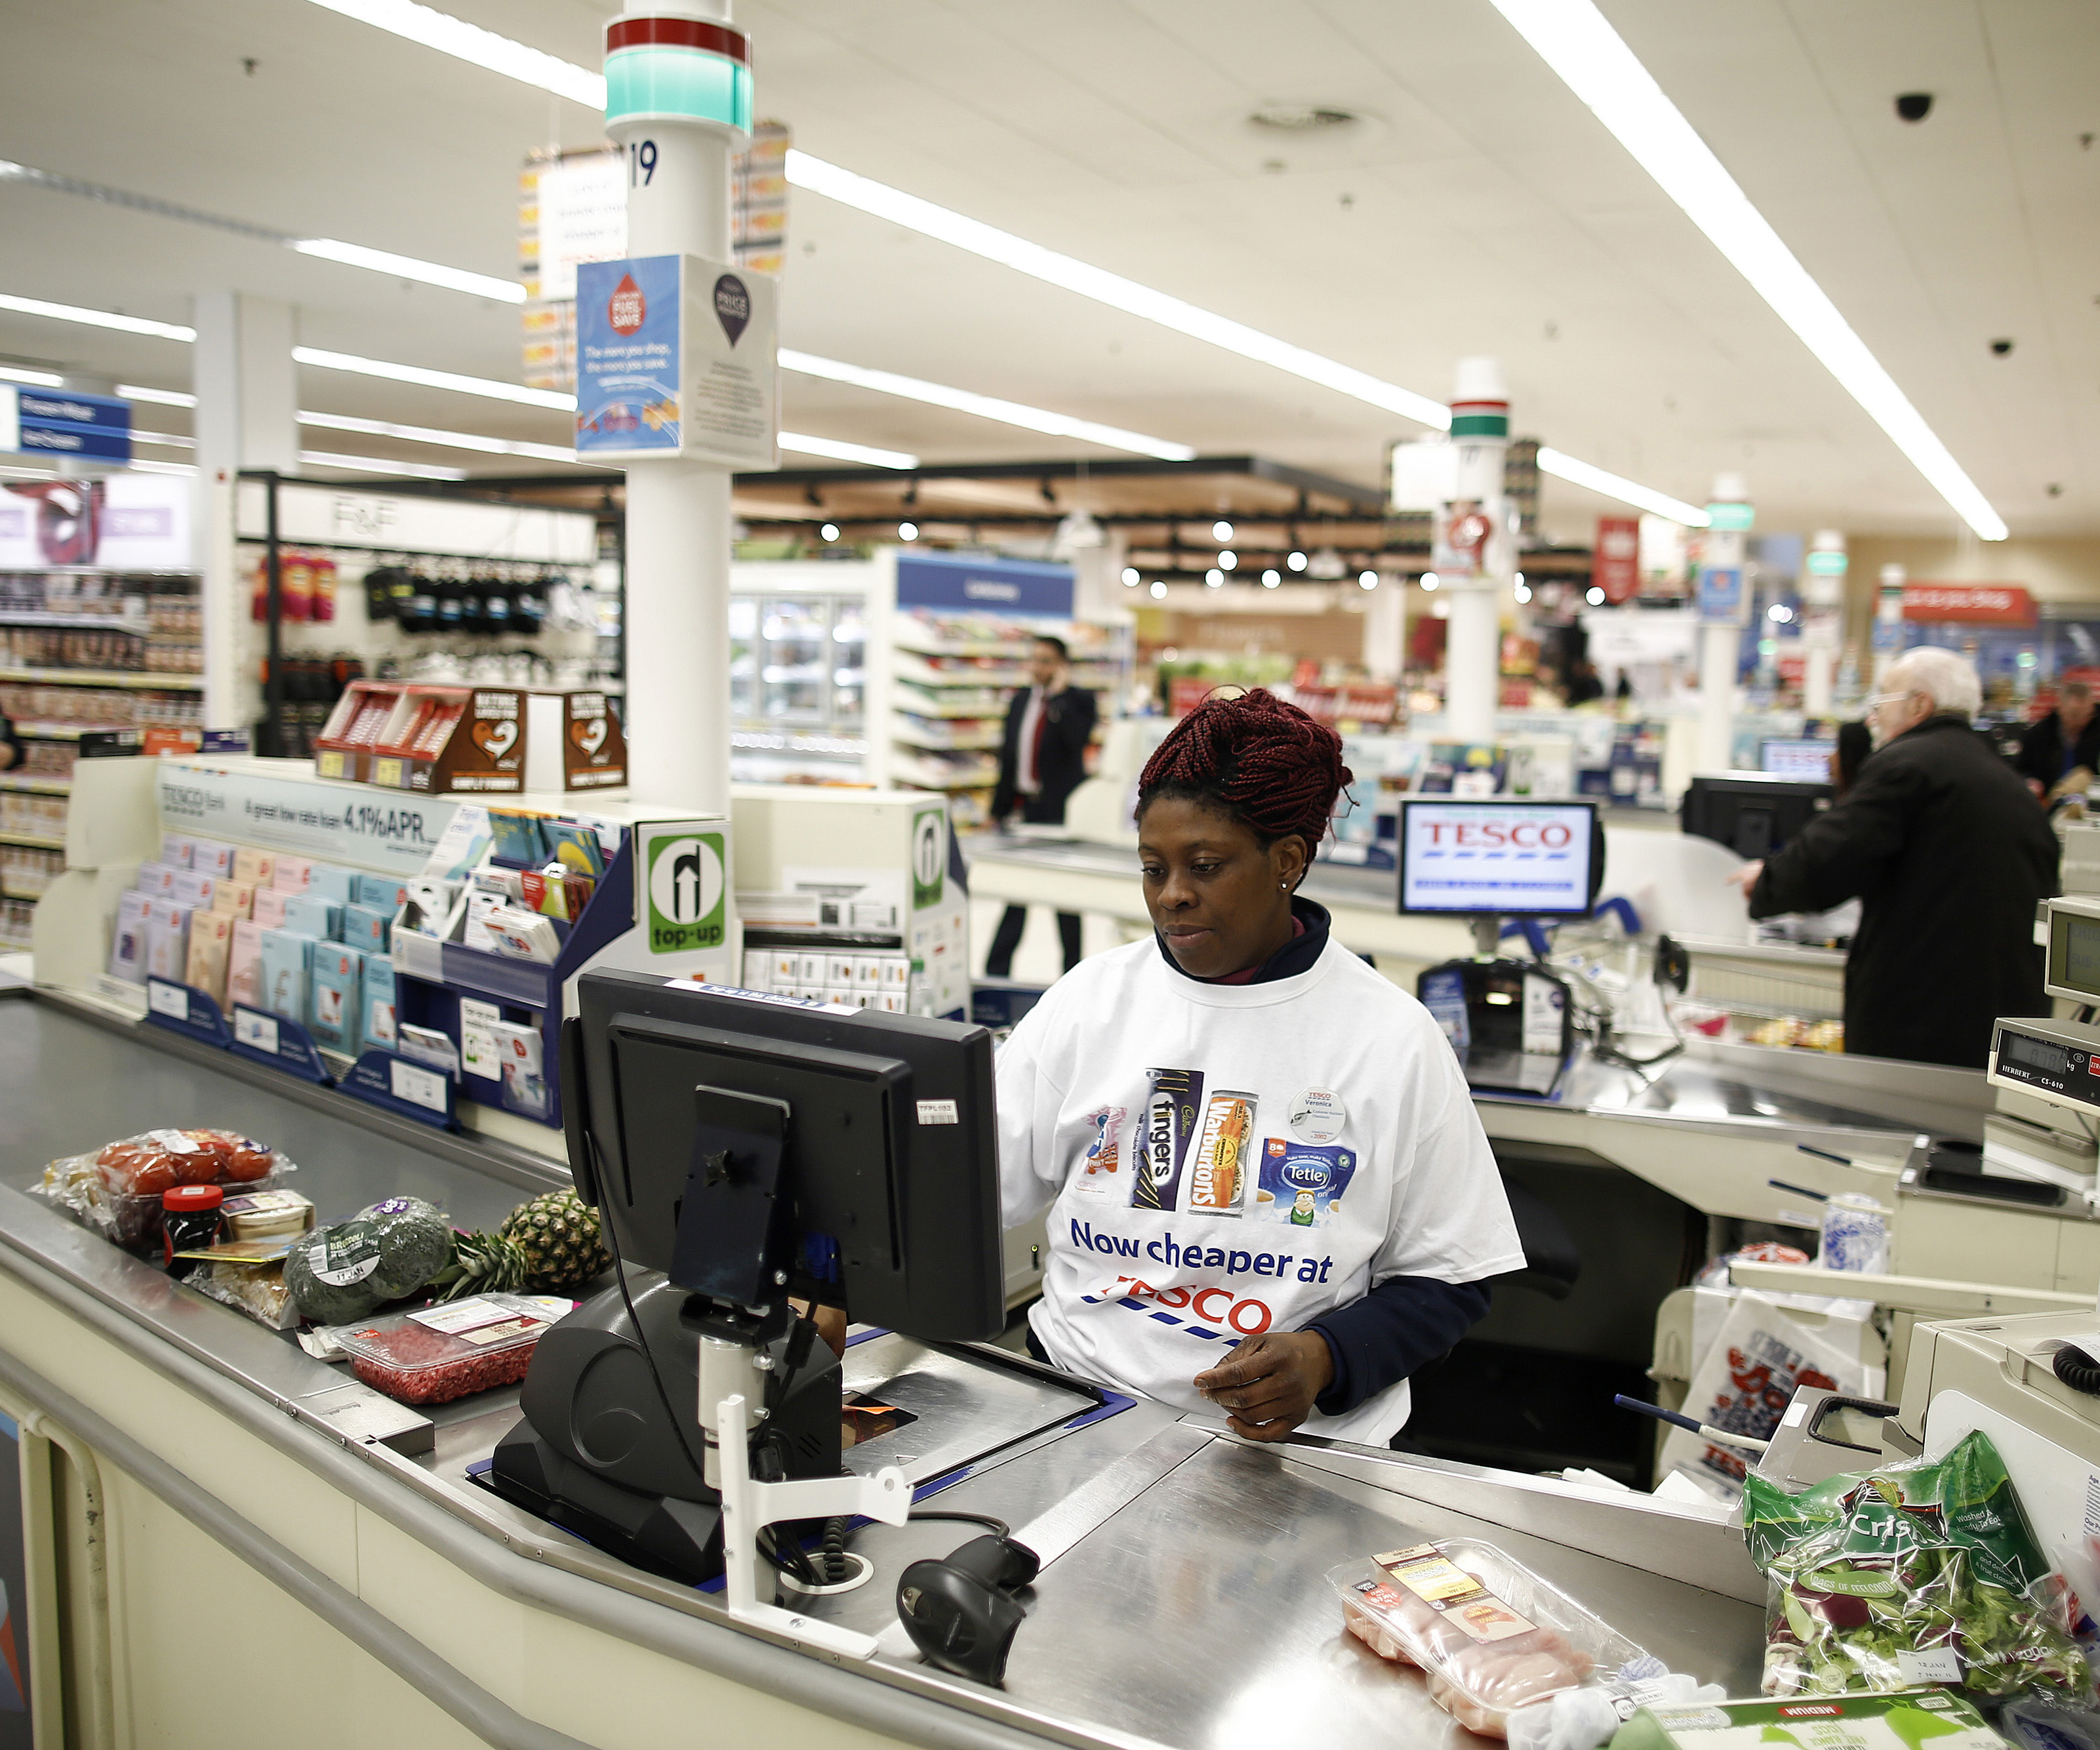 Tesco workers could lose hundreds in new pay deal